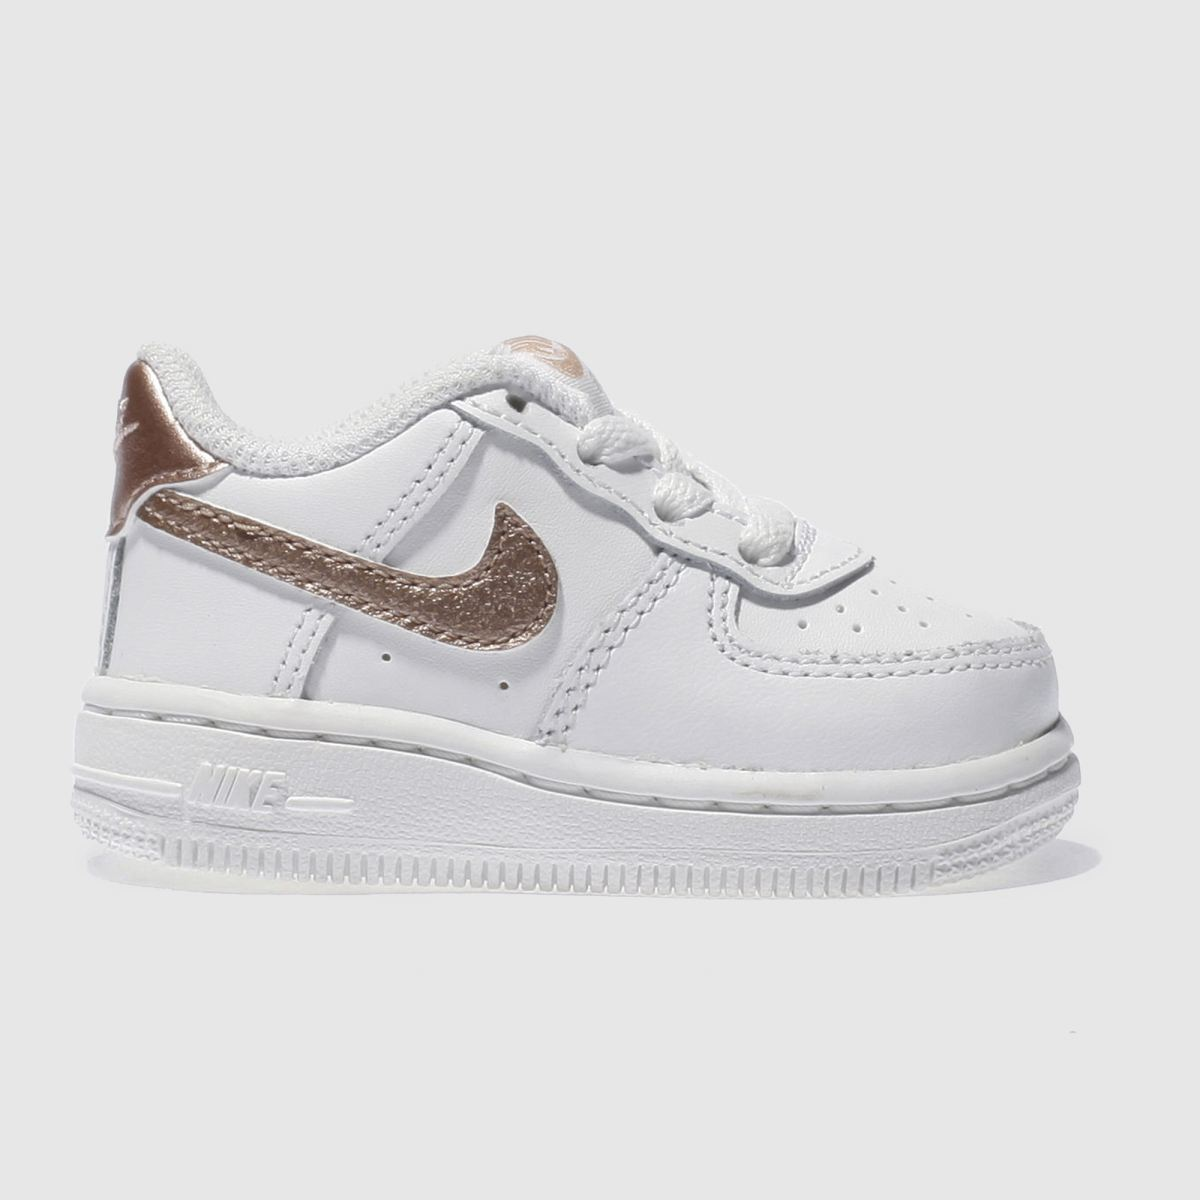 nike white & gold air force 1 Girls Toddler Trainers